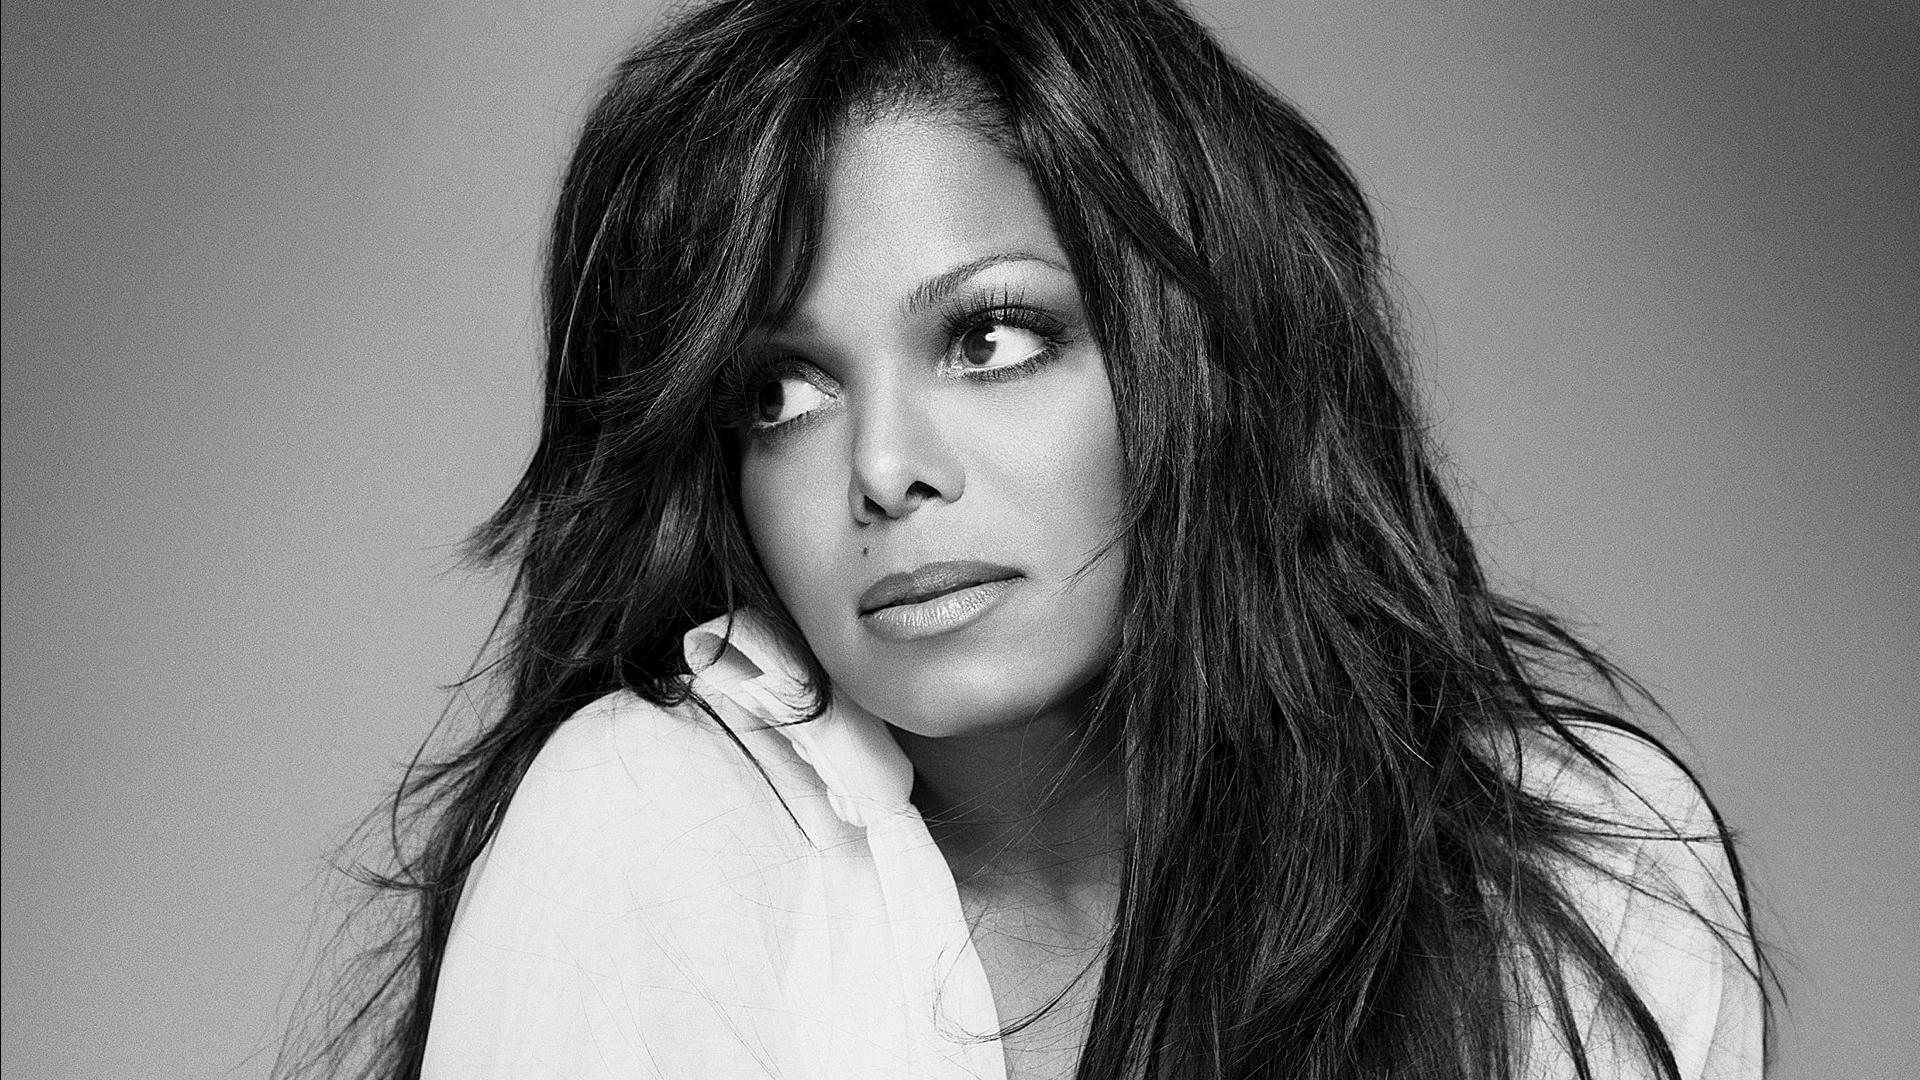 monochrome janet jackson wallpaper 60101